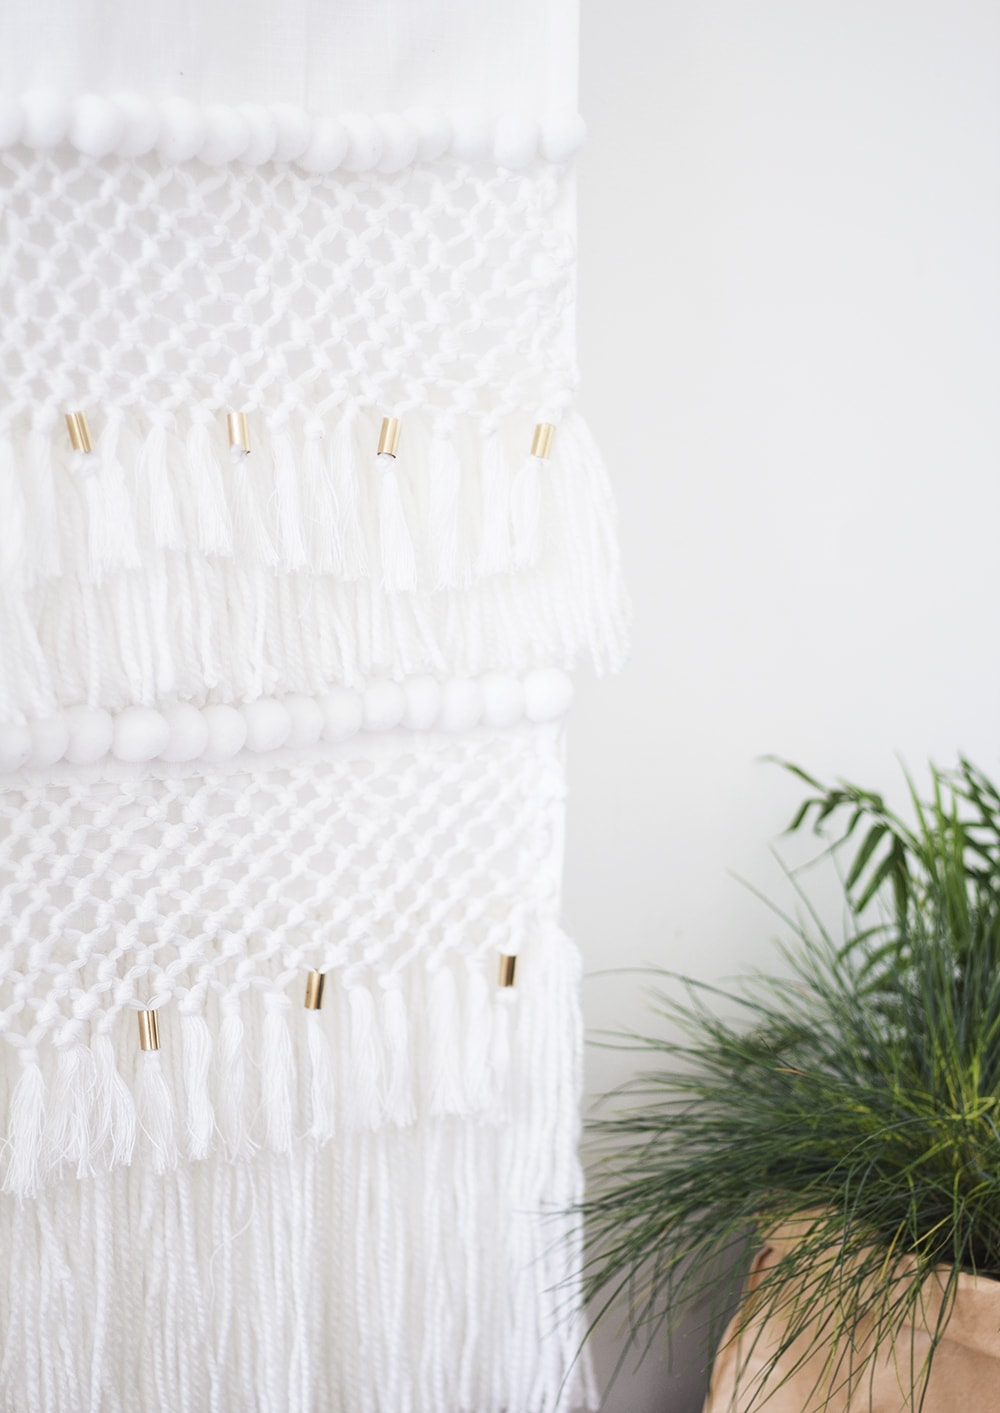 DIY no-weave wall hanging